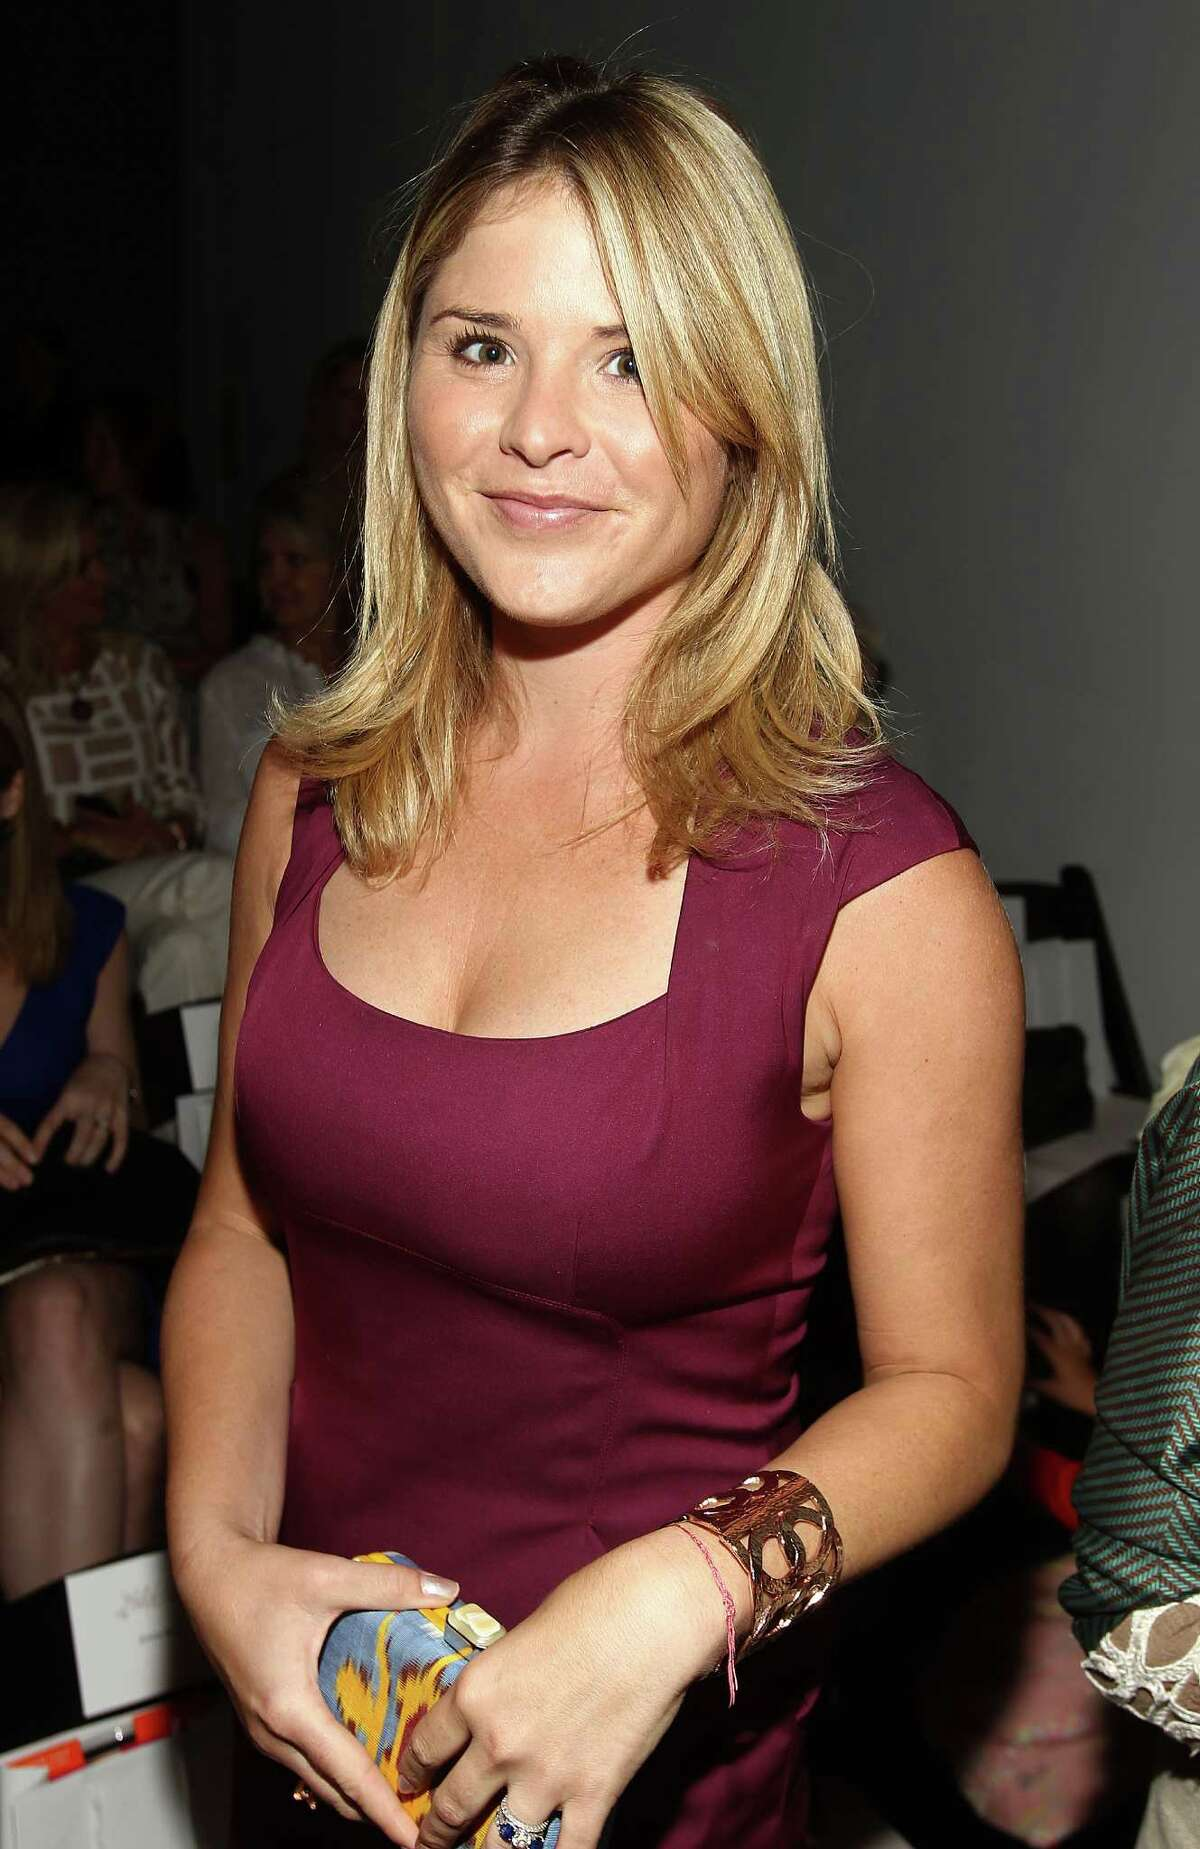 Jenna Bush Hager is seen at the Lela Rose Spring 2013 Runway Show, on Sunday, Sept. 9, 2012 in New York. (Photo by Donald Traill/Invision/AP Images)